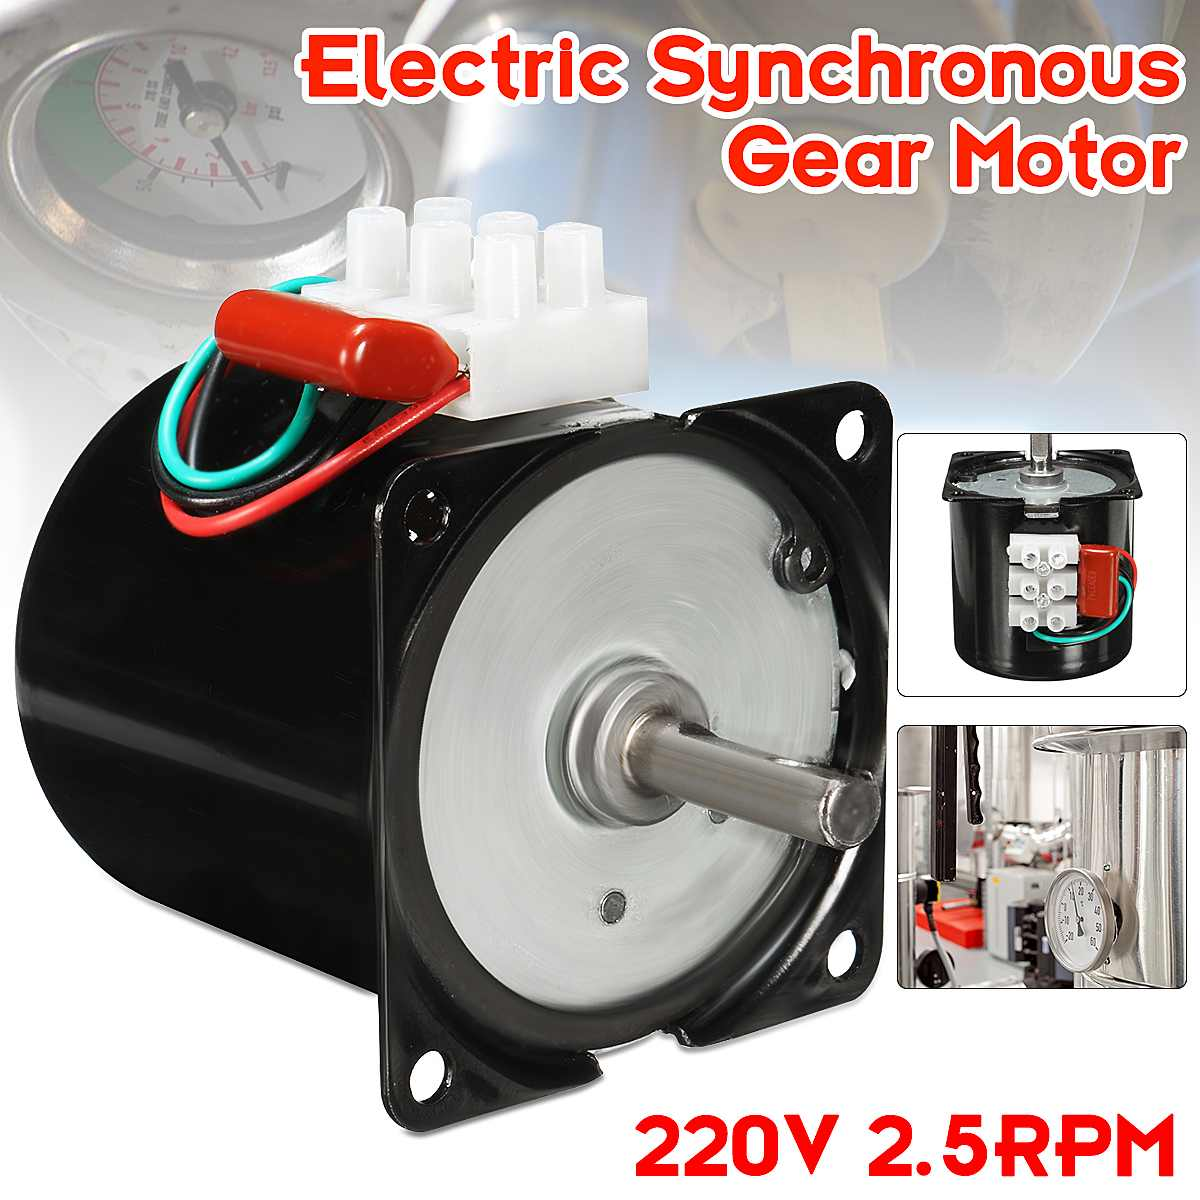 New AC 220V 2.5RPM High Torque Gear-Box Electric Synchronous Gear Motor ReplacementsNew AC 220V 2.5RPM High Torque Gear-Box Electric Synchronous Gear Motor Replacements